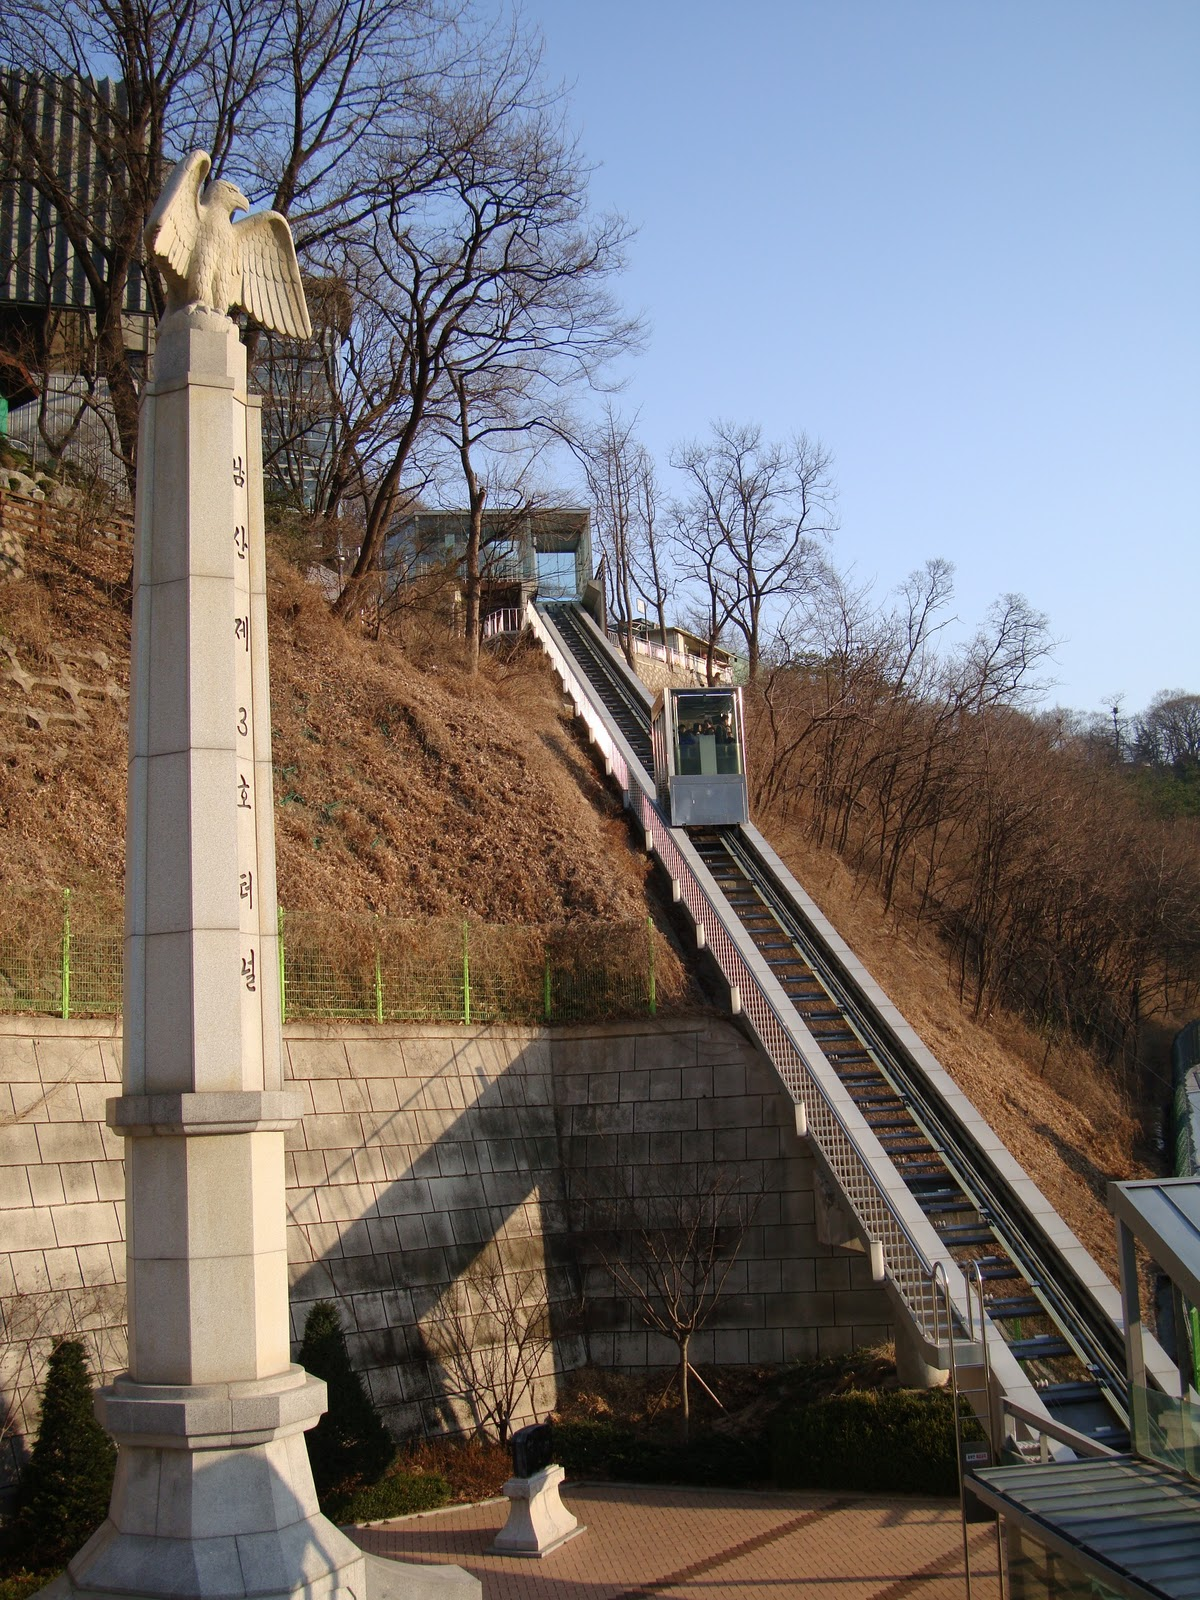 Namsan cable car - From There You Transfer To The Namsan Cable Car This Is Where The Final Scene Of Kim Sam Soon Was Shot